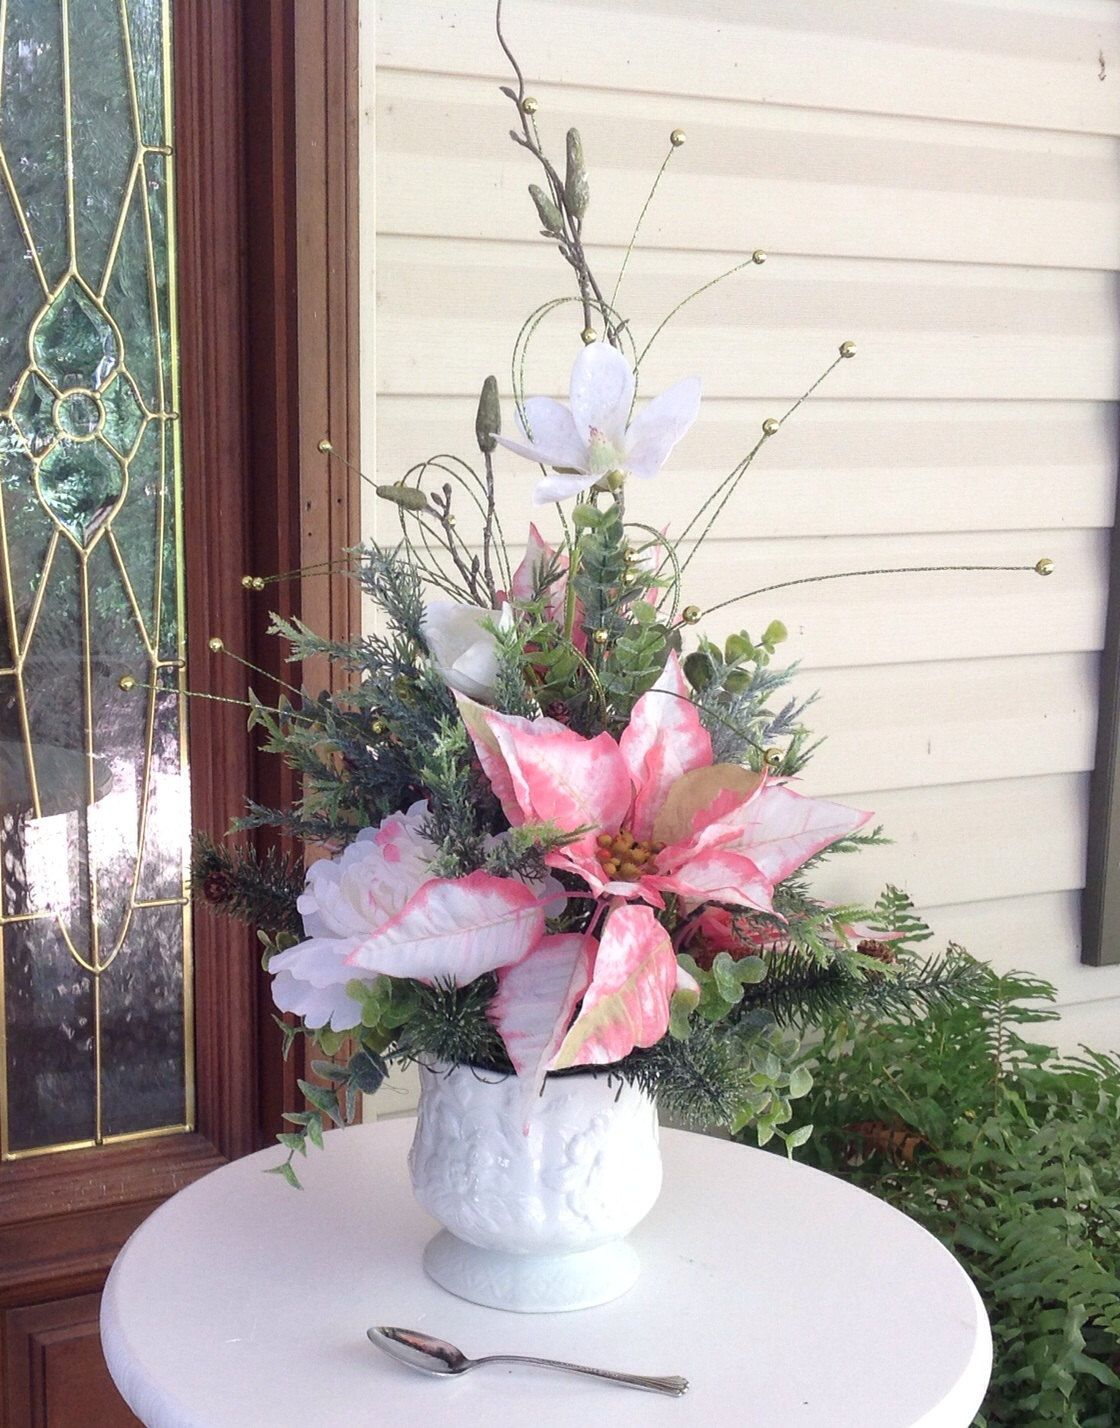 Pink White Poinsettia Centerpiece Holiday Floral Arrangement Christmas Poinsett Holiday Floral Arrangements Holiday Table Decorations Poinsettia Centerpiece